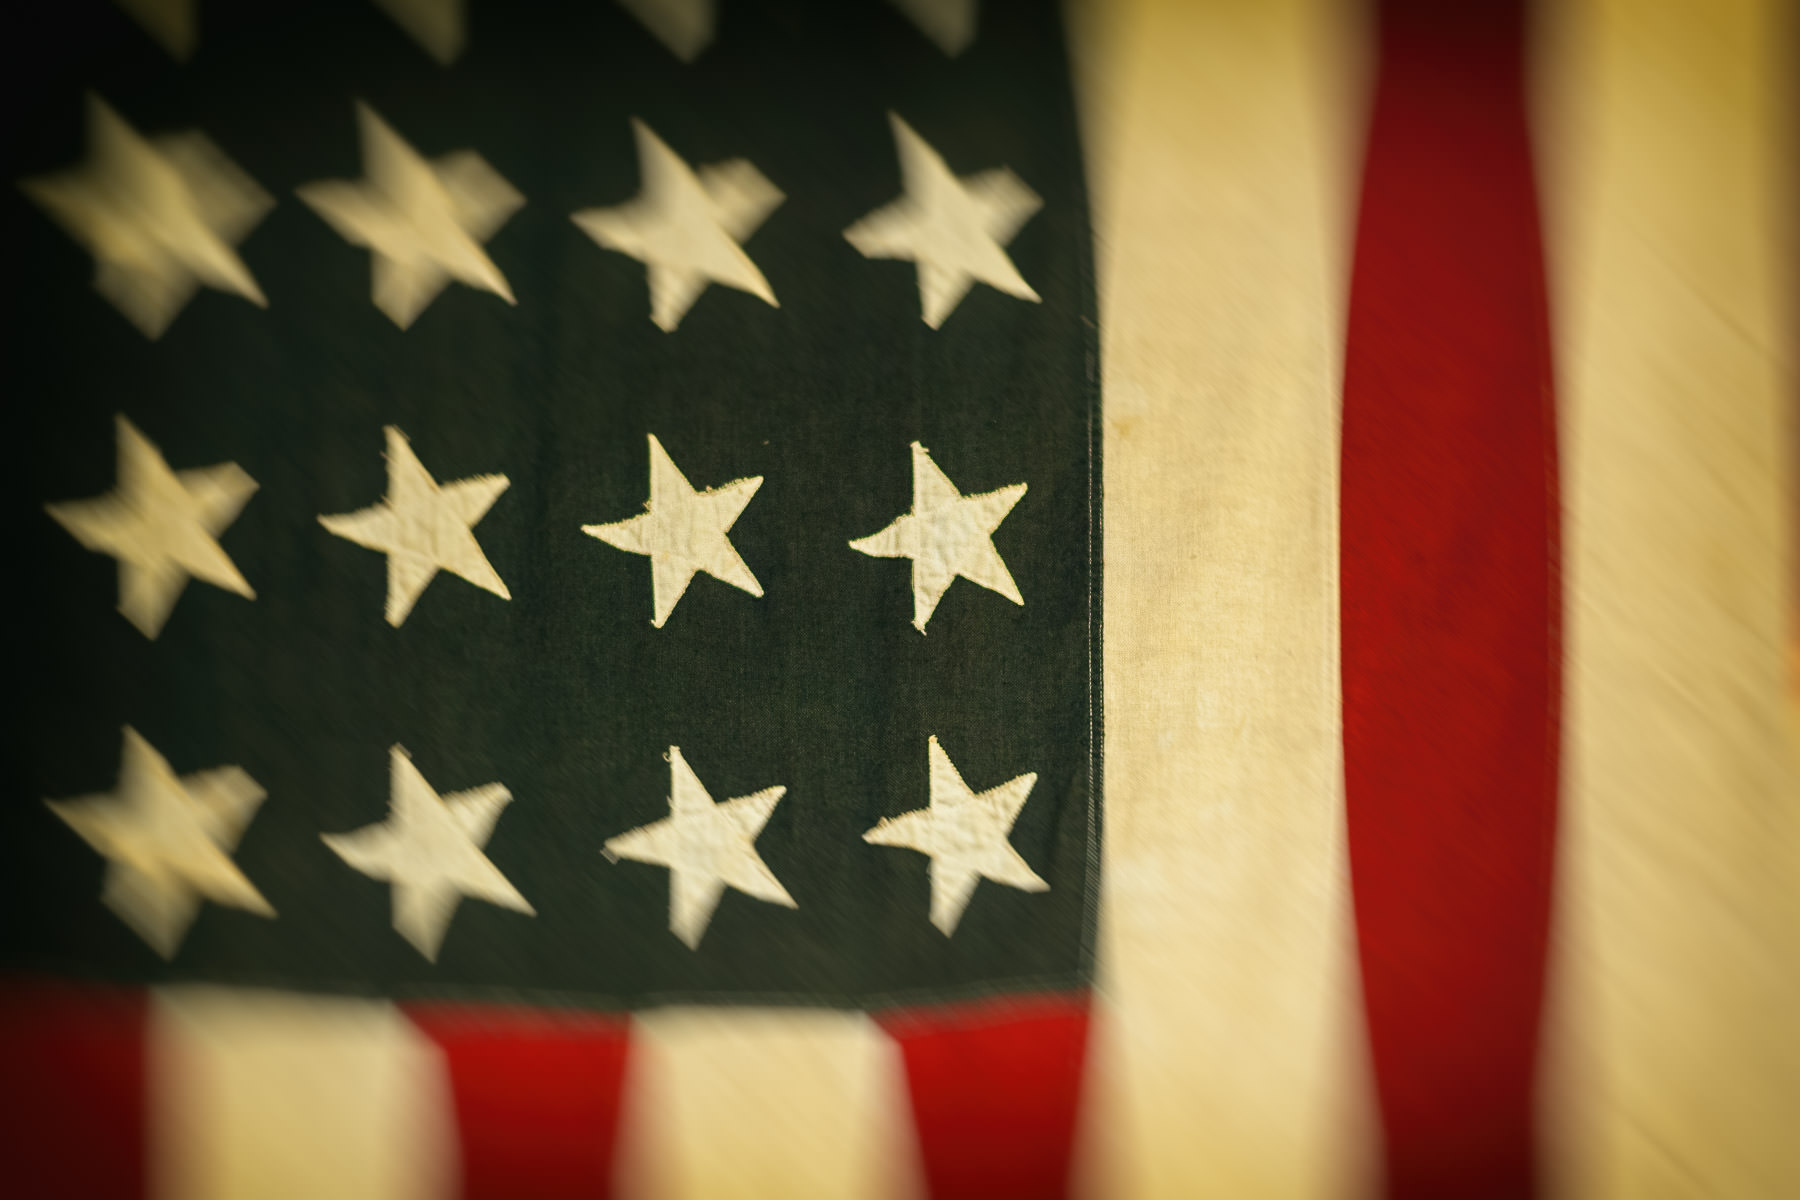 A 48-star American flag at the Nacogdoches, Texas Convention & Visitor's Bureau.